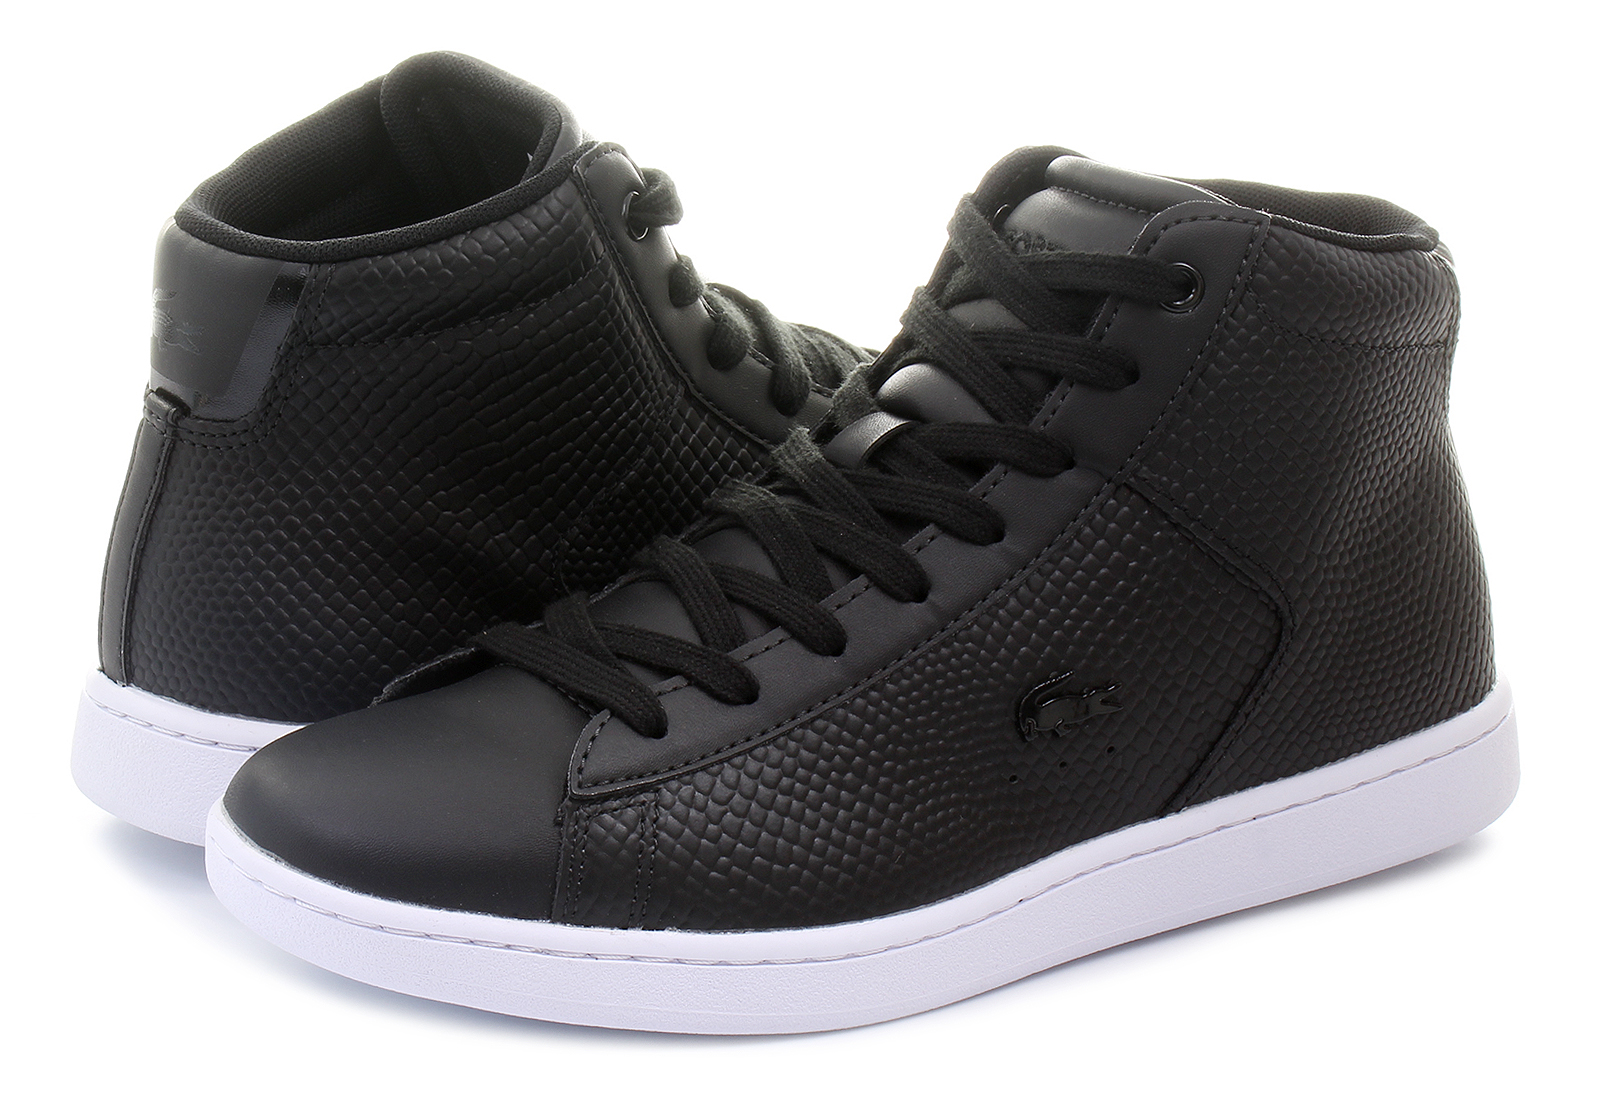 Lacoste Shoes - Carnaby Evo Mid - 173SPW0015-024 - Online shop ... 7113c36801